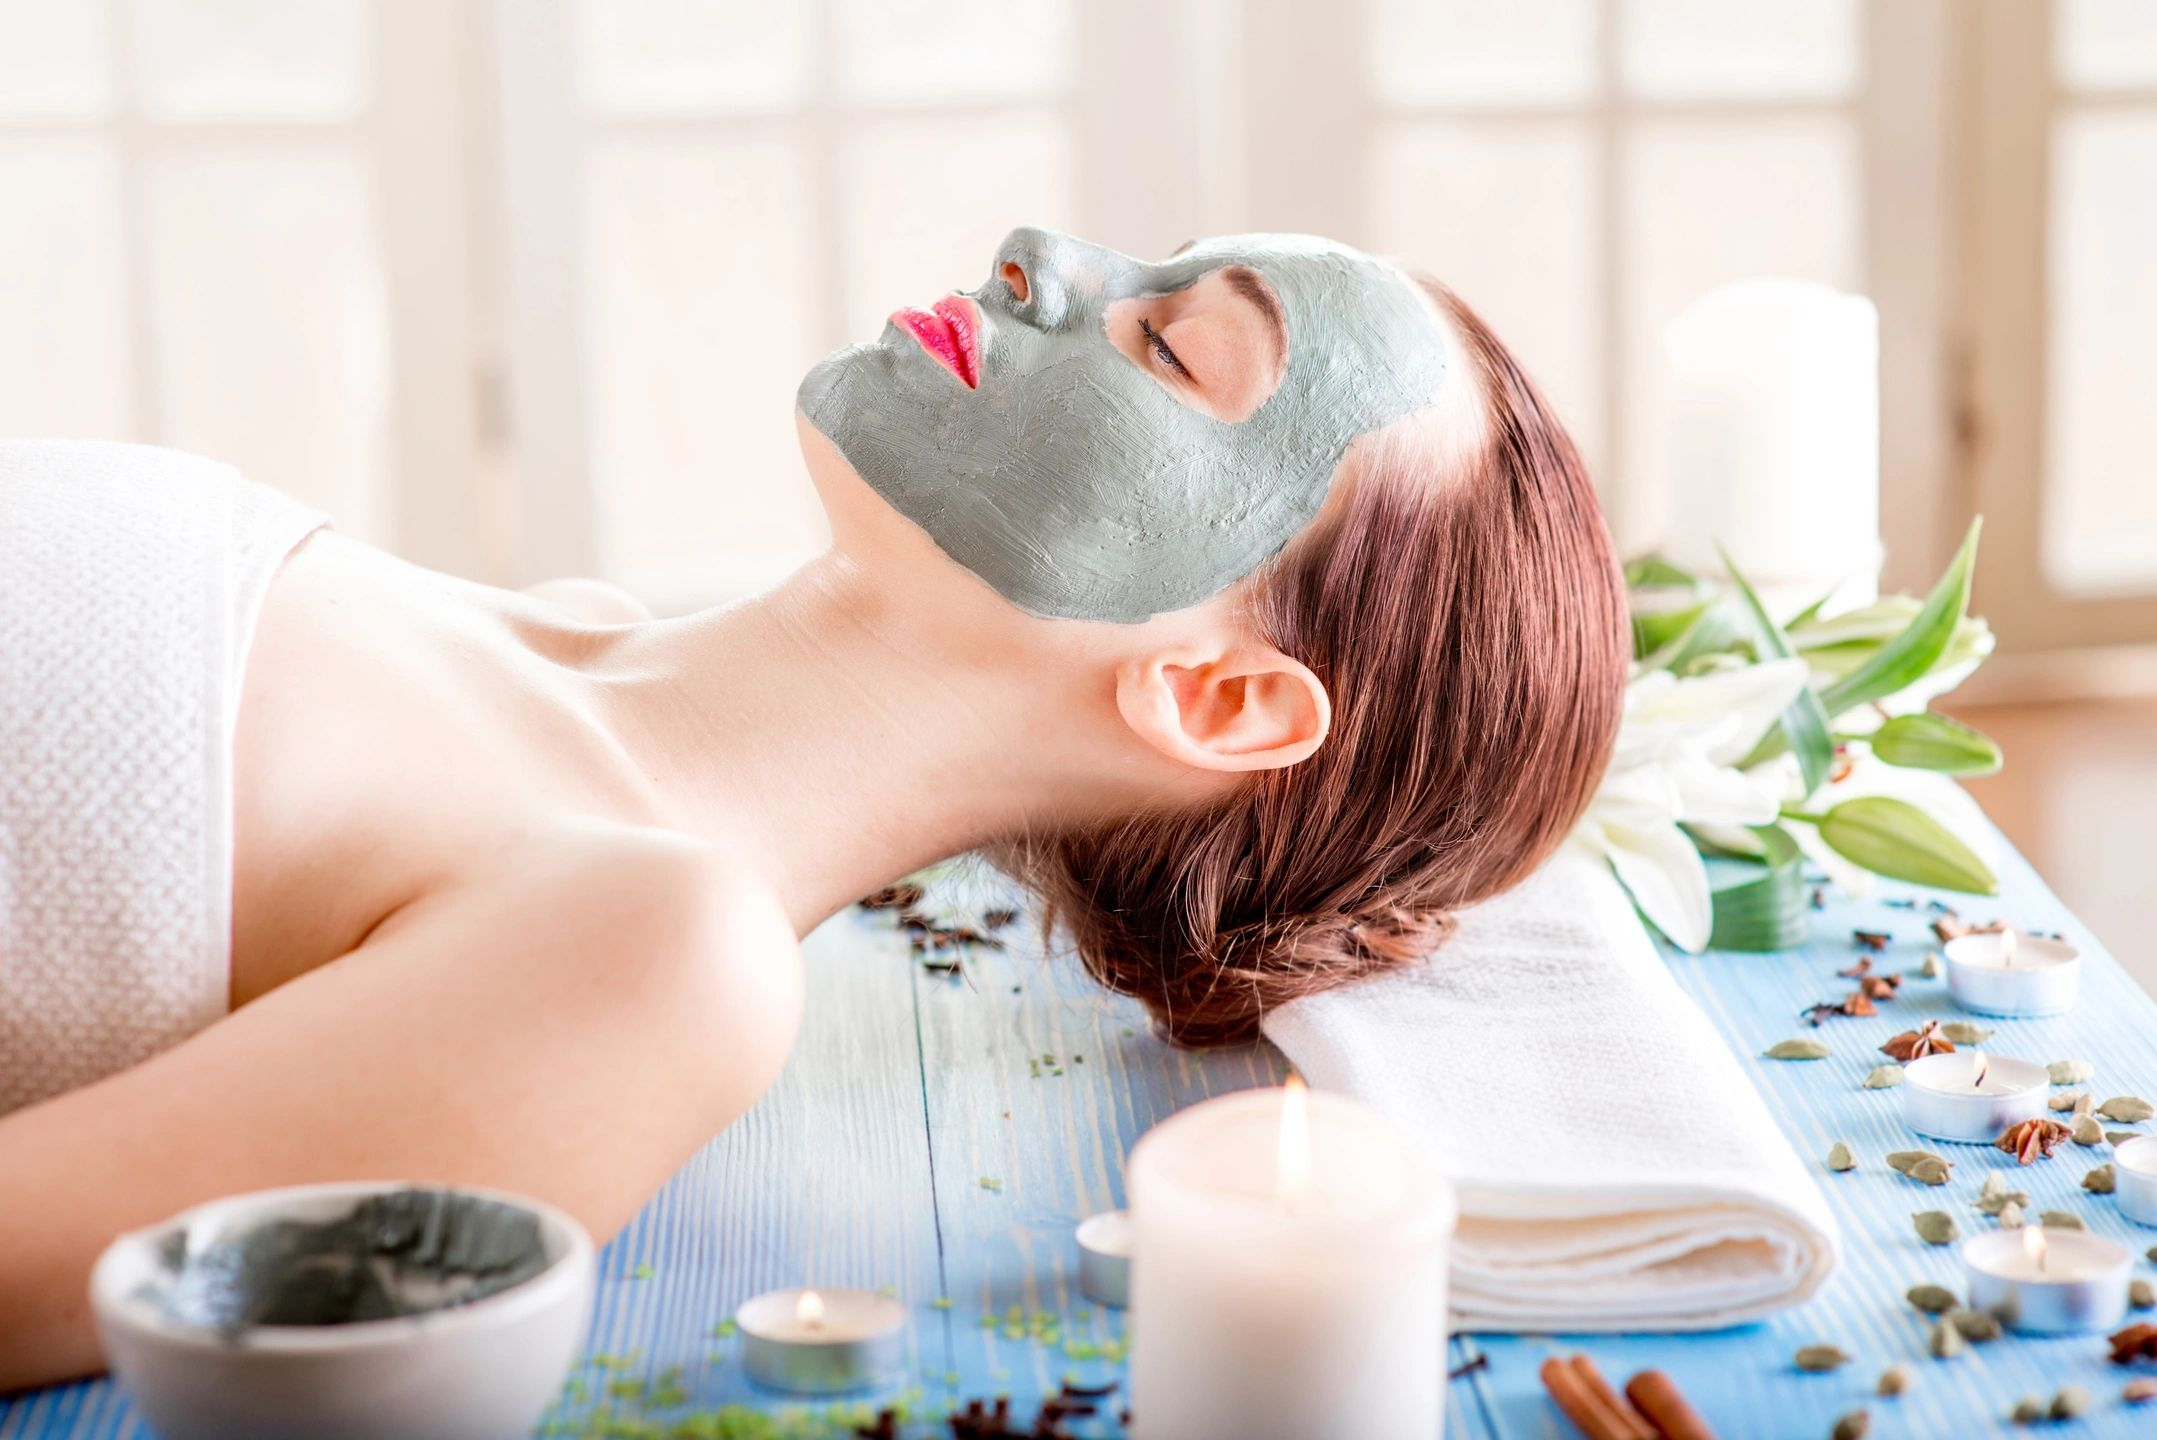 Clay Facial mask on a women